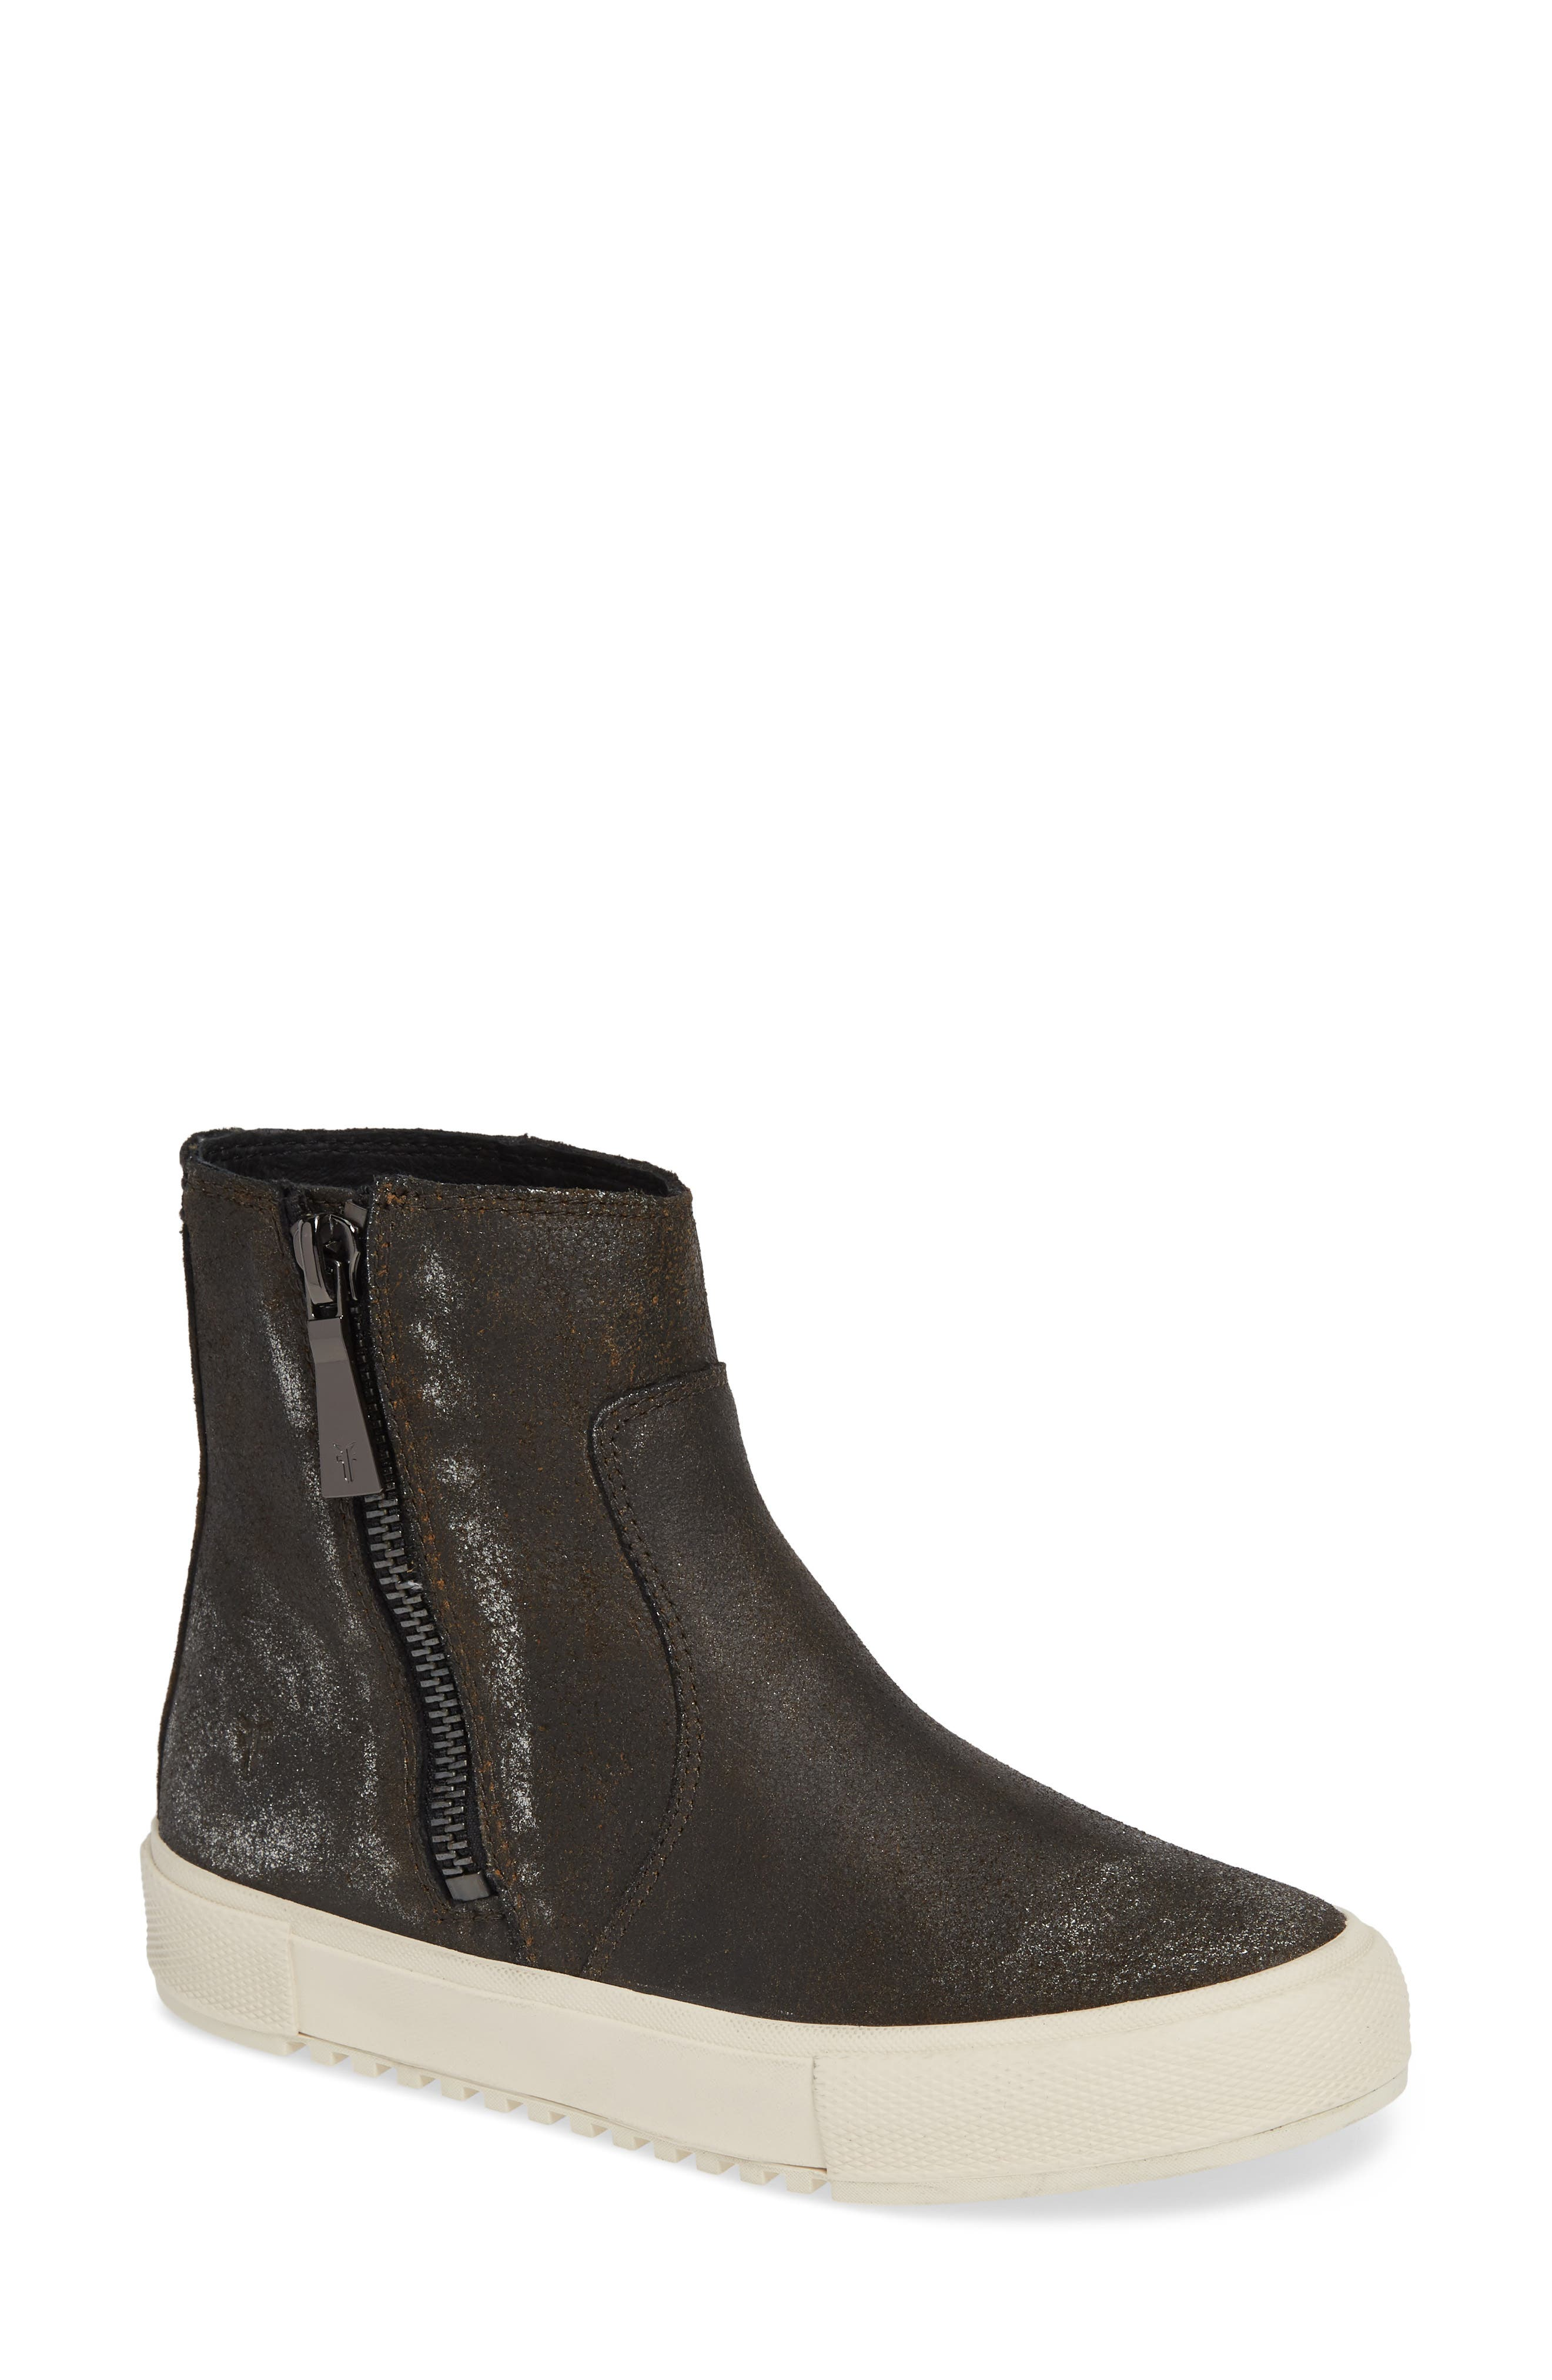 Gia Bootie,                             Main thumbnail 1, color,                             ANTHRACITE LEATHER